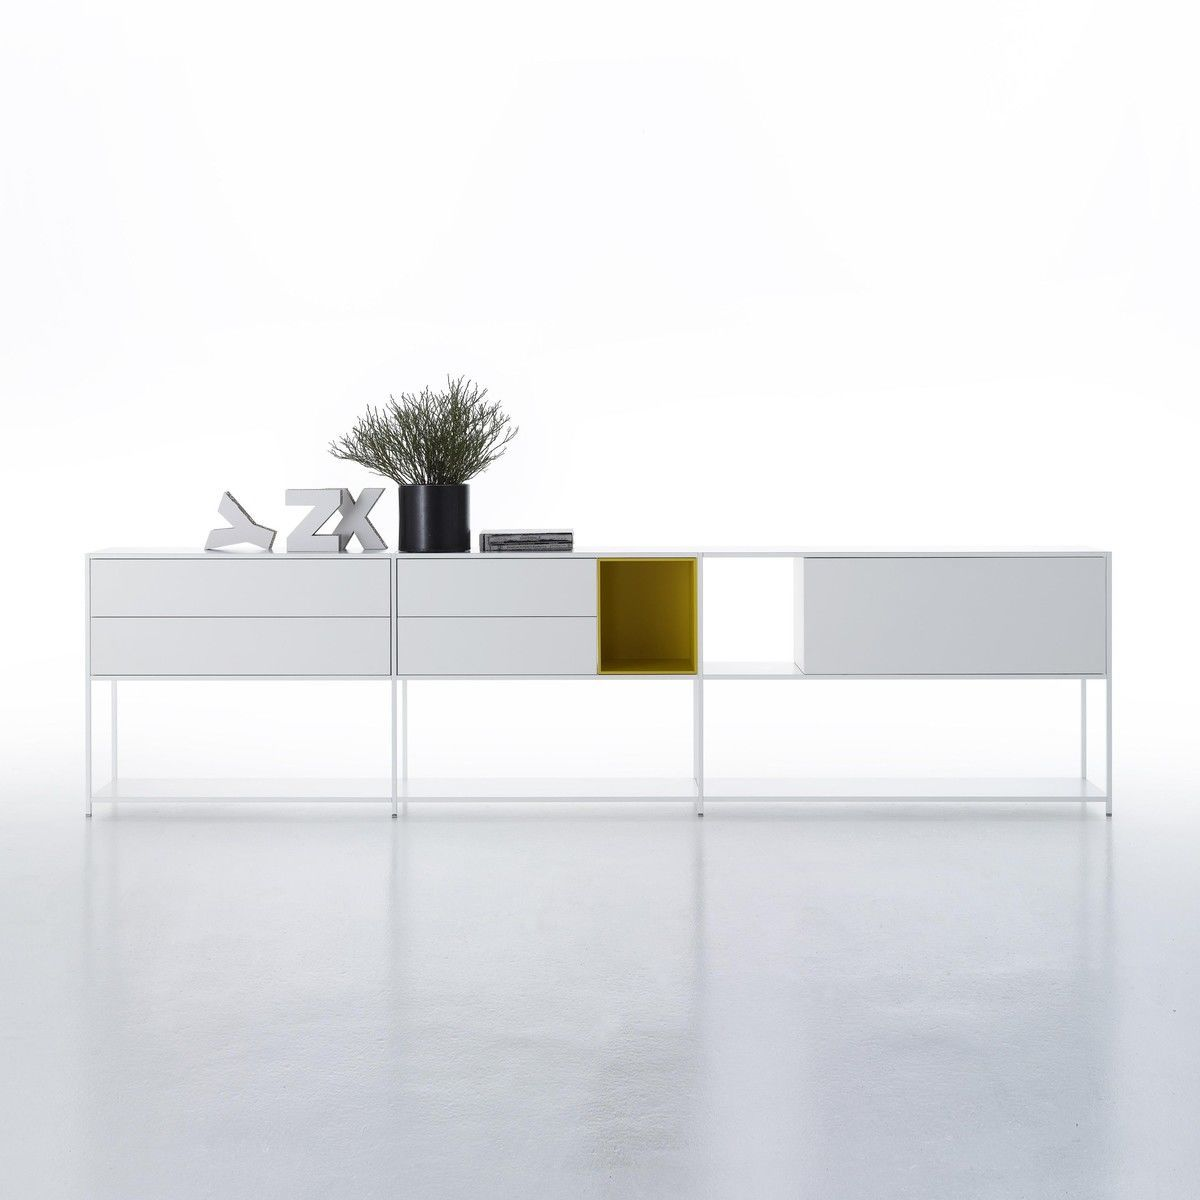 minima 3 0 sideboard 306x33x79cm mdf italia. Black Bedroom Furniture Sets. Home Design Ideas